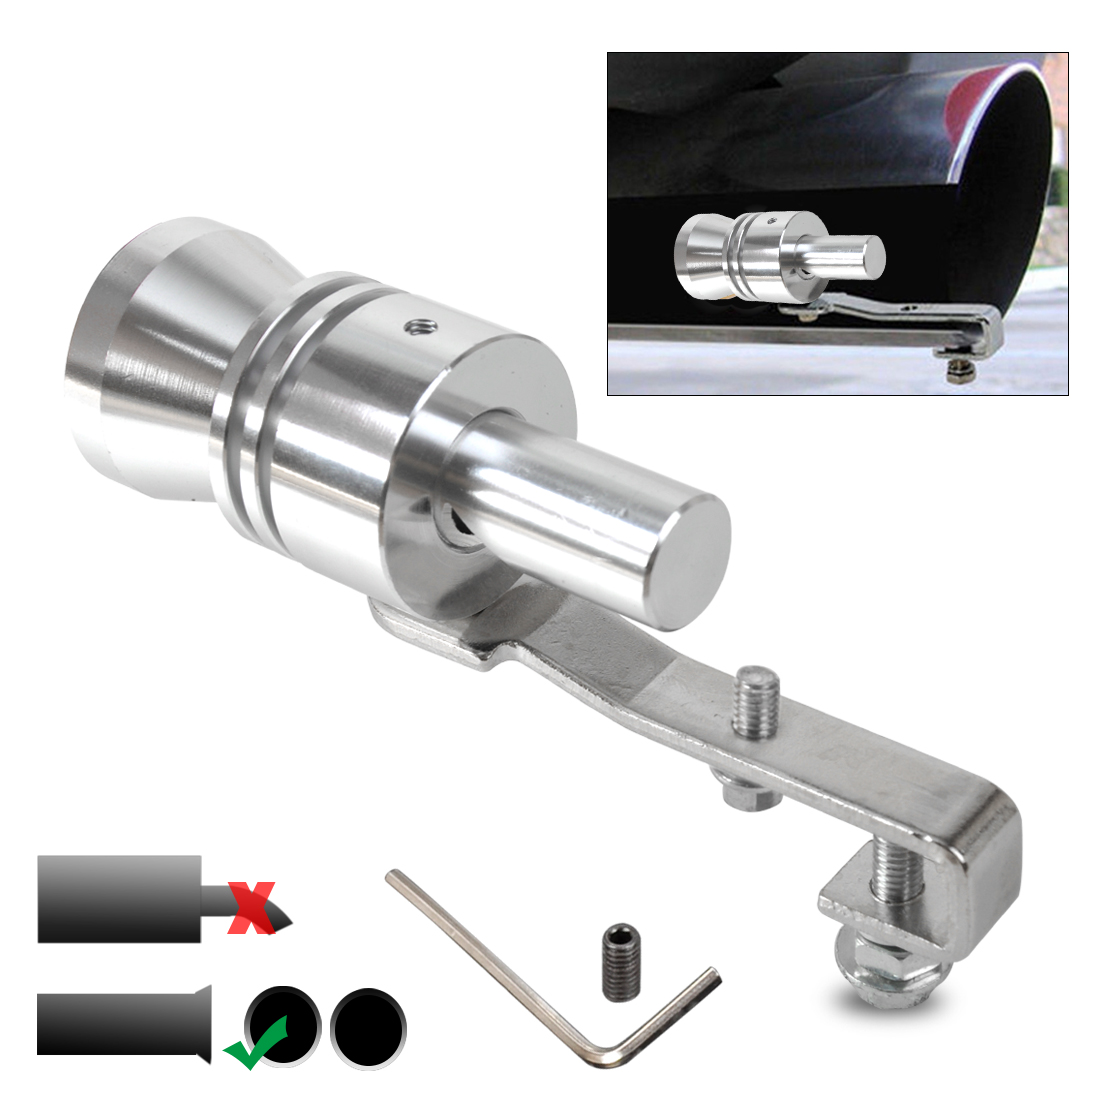 Silver XL Universal Car Turbo Sound Muffler Exhaust Pipe Blow-Off Vale Simulator Whistle